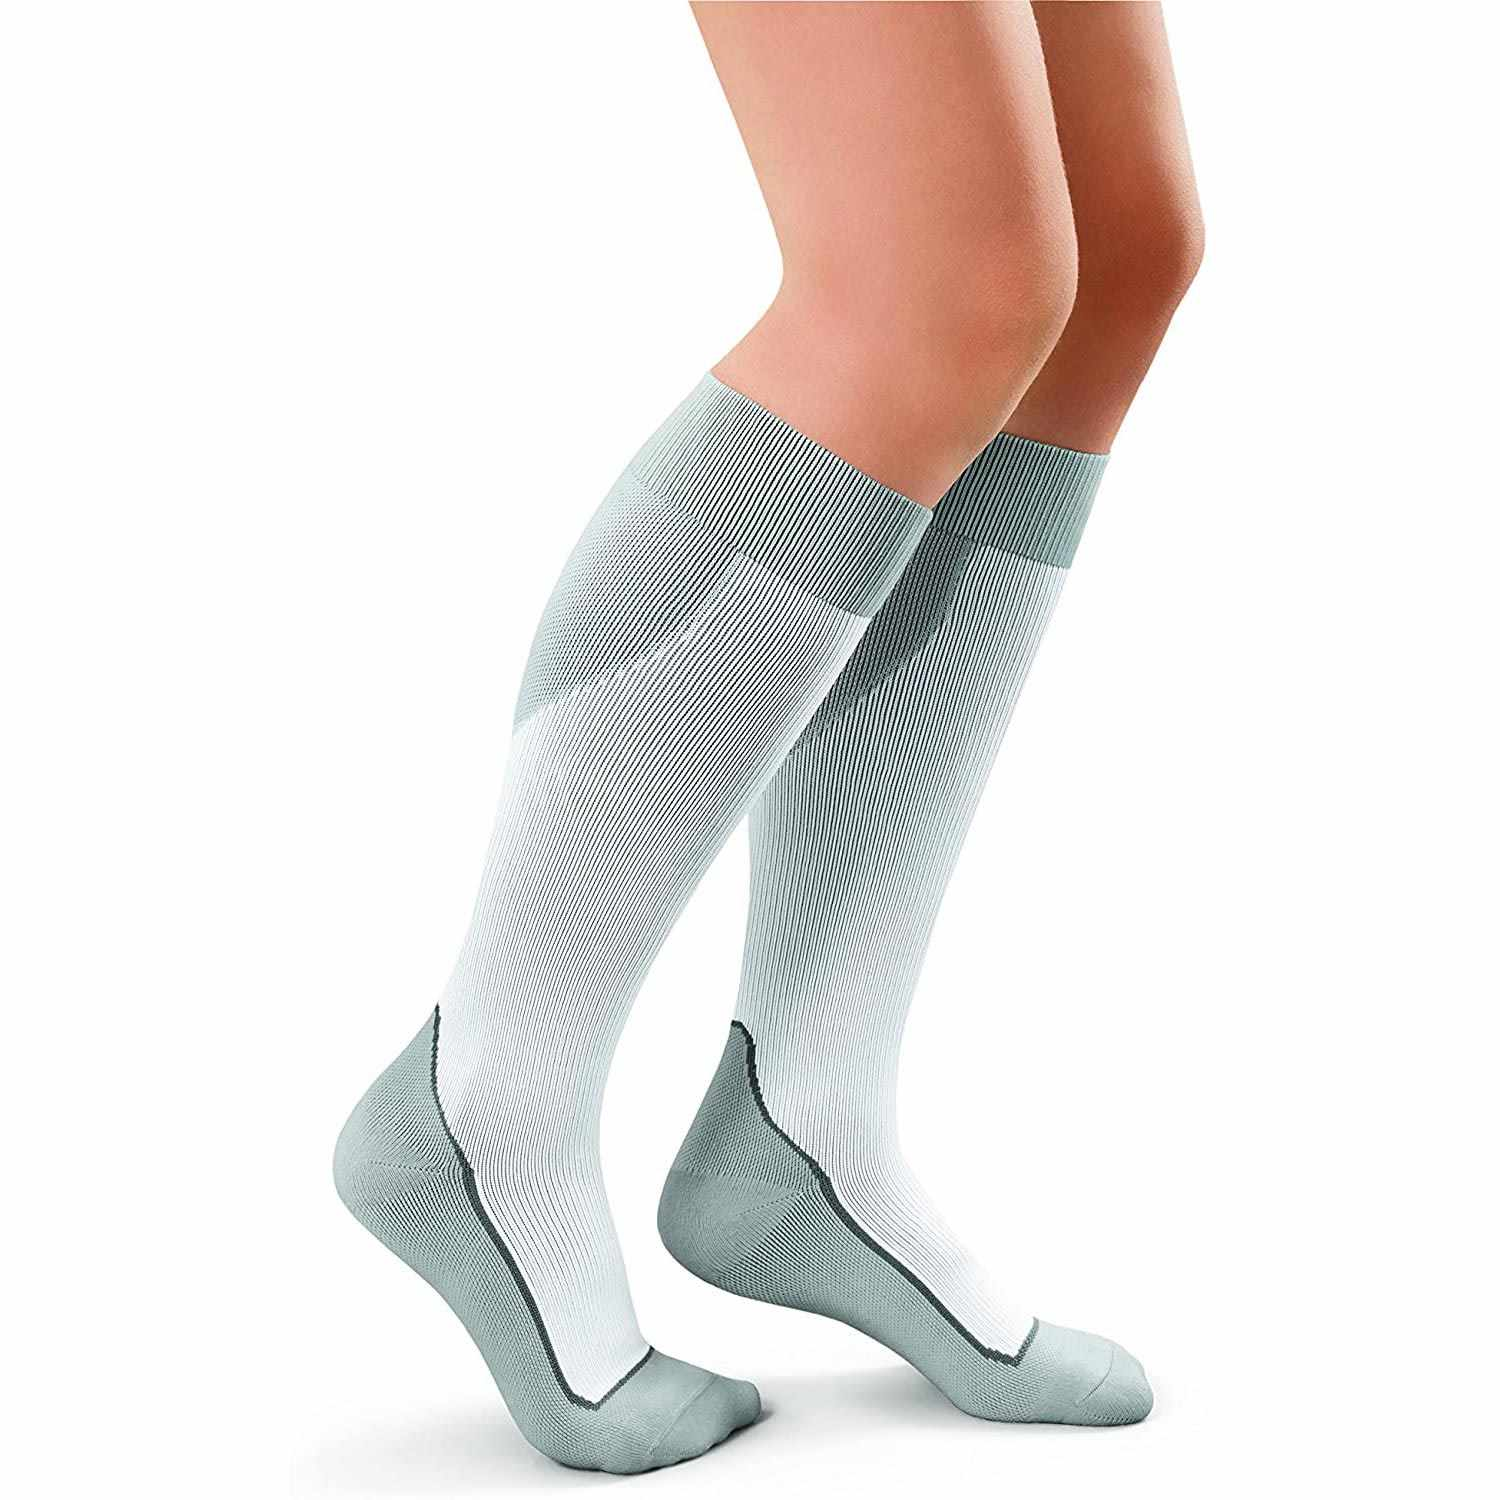 Jobst Knee-High Firm Close Toe Sport Compression Socks, Large, White/Grey